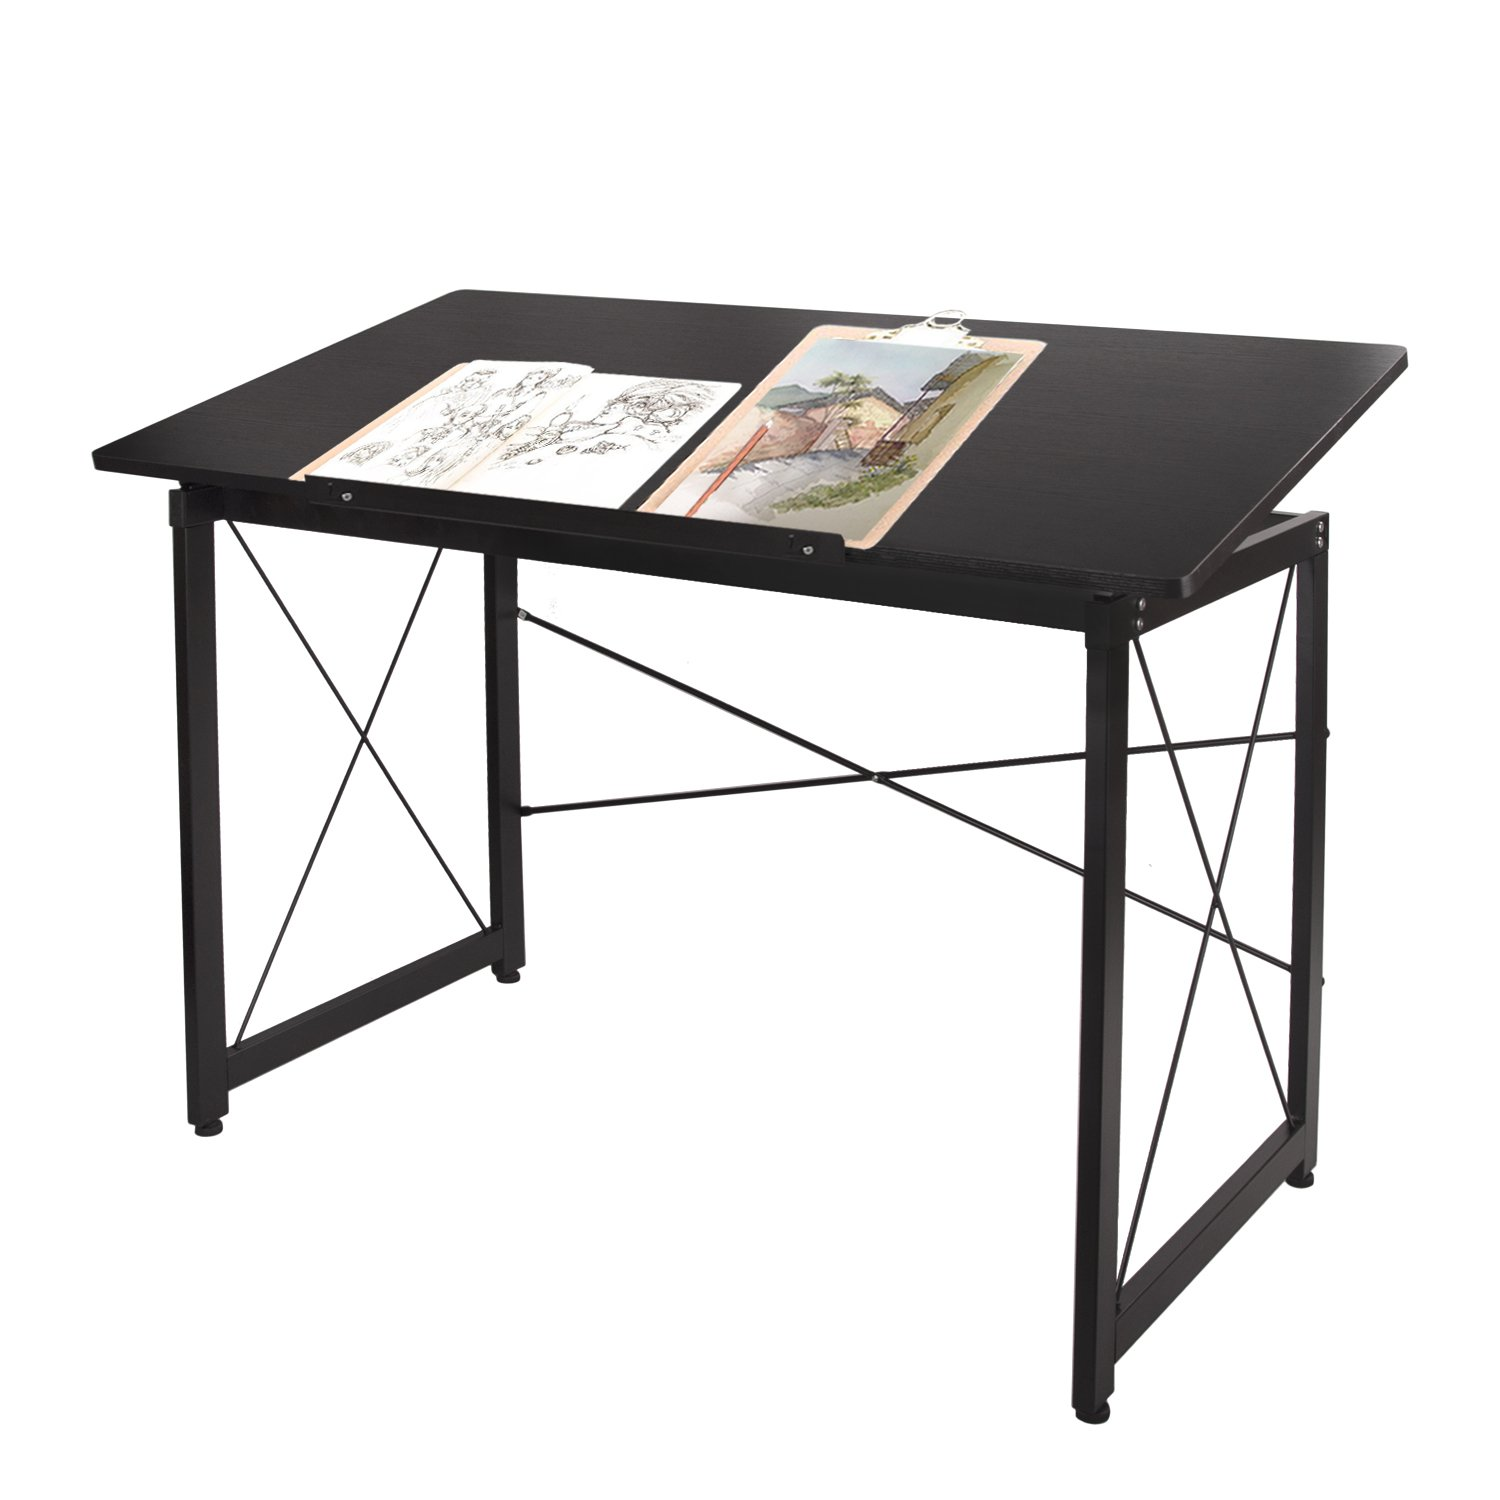 Bon Adjustable Art Table, Large Drafting Table Computer Desk Wood Surface For  Drawing, Painting, Writing And Studying 47.2u0027u0027 X 23.6u0027u0027